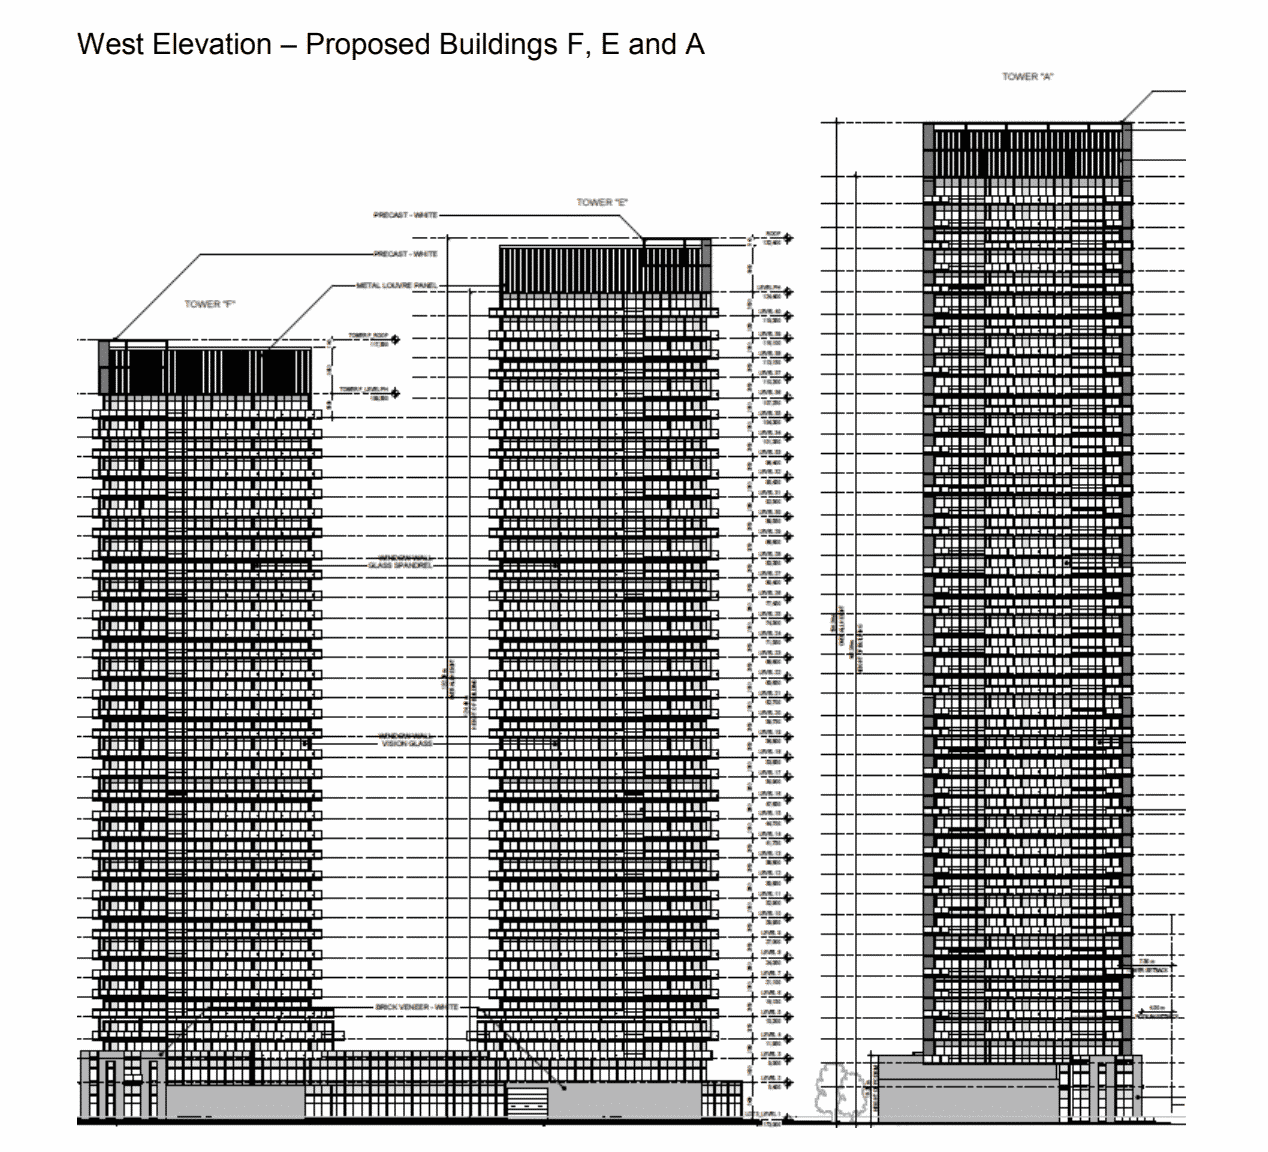 [object object] 6 New Towers At Hurontario and Eglinton Mississauga 91 131 eglinton ave east mississauga condos for sale towers a e f